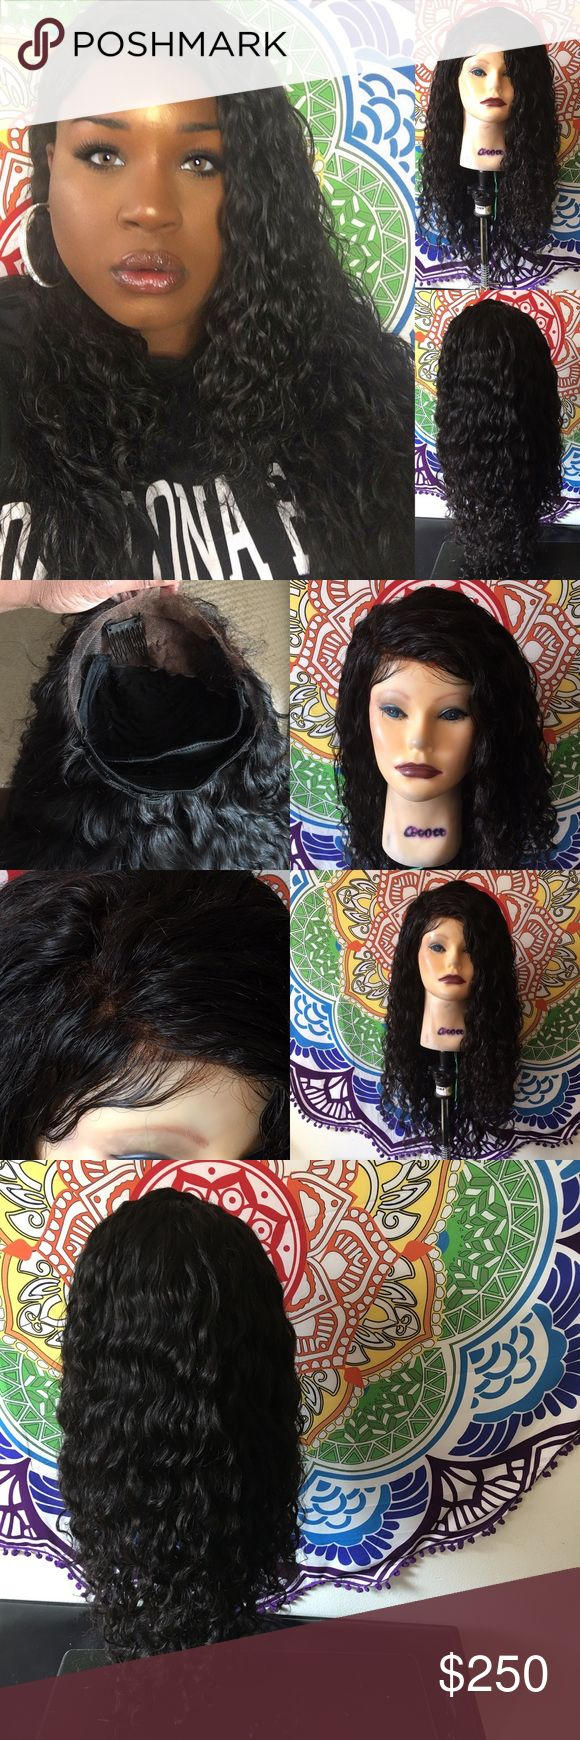 """Brazilian Water Wave Human Hair Wig With Frontal Brazilian Water wave human hair 18"""" inch ear to ear lace frontal with baby hair 3 bundles 22"""", 24"""", 24"""" I custom made this wig on a spandex dome cap. Wig has 2 combs in the front and a elastic band for a secure fit.  Hair can be worn in the wet and wavy style or can be worn in its natural state. Very soft and pretty. Ends have been trimmed.  The knots on the frontal have been bleached. Sorry I do not hold items or do trades. Shipping timeframe…"""